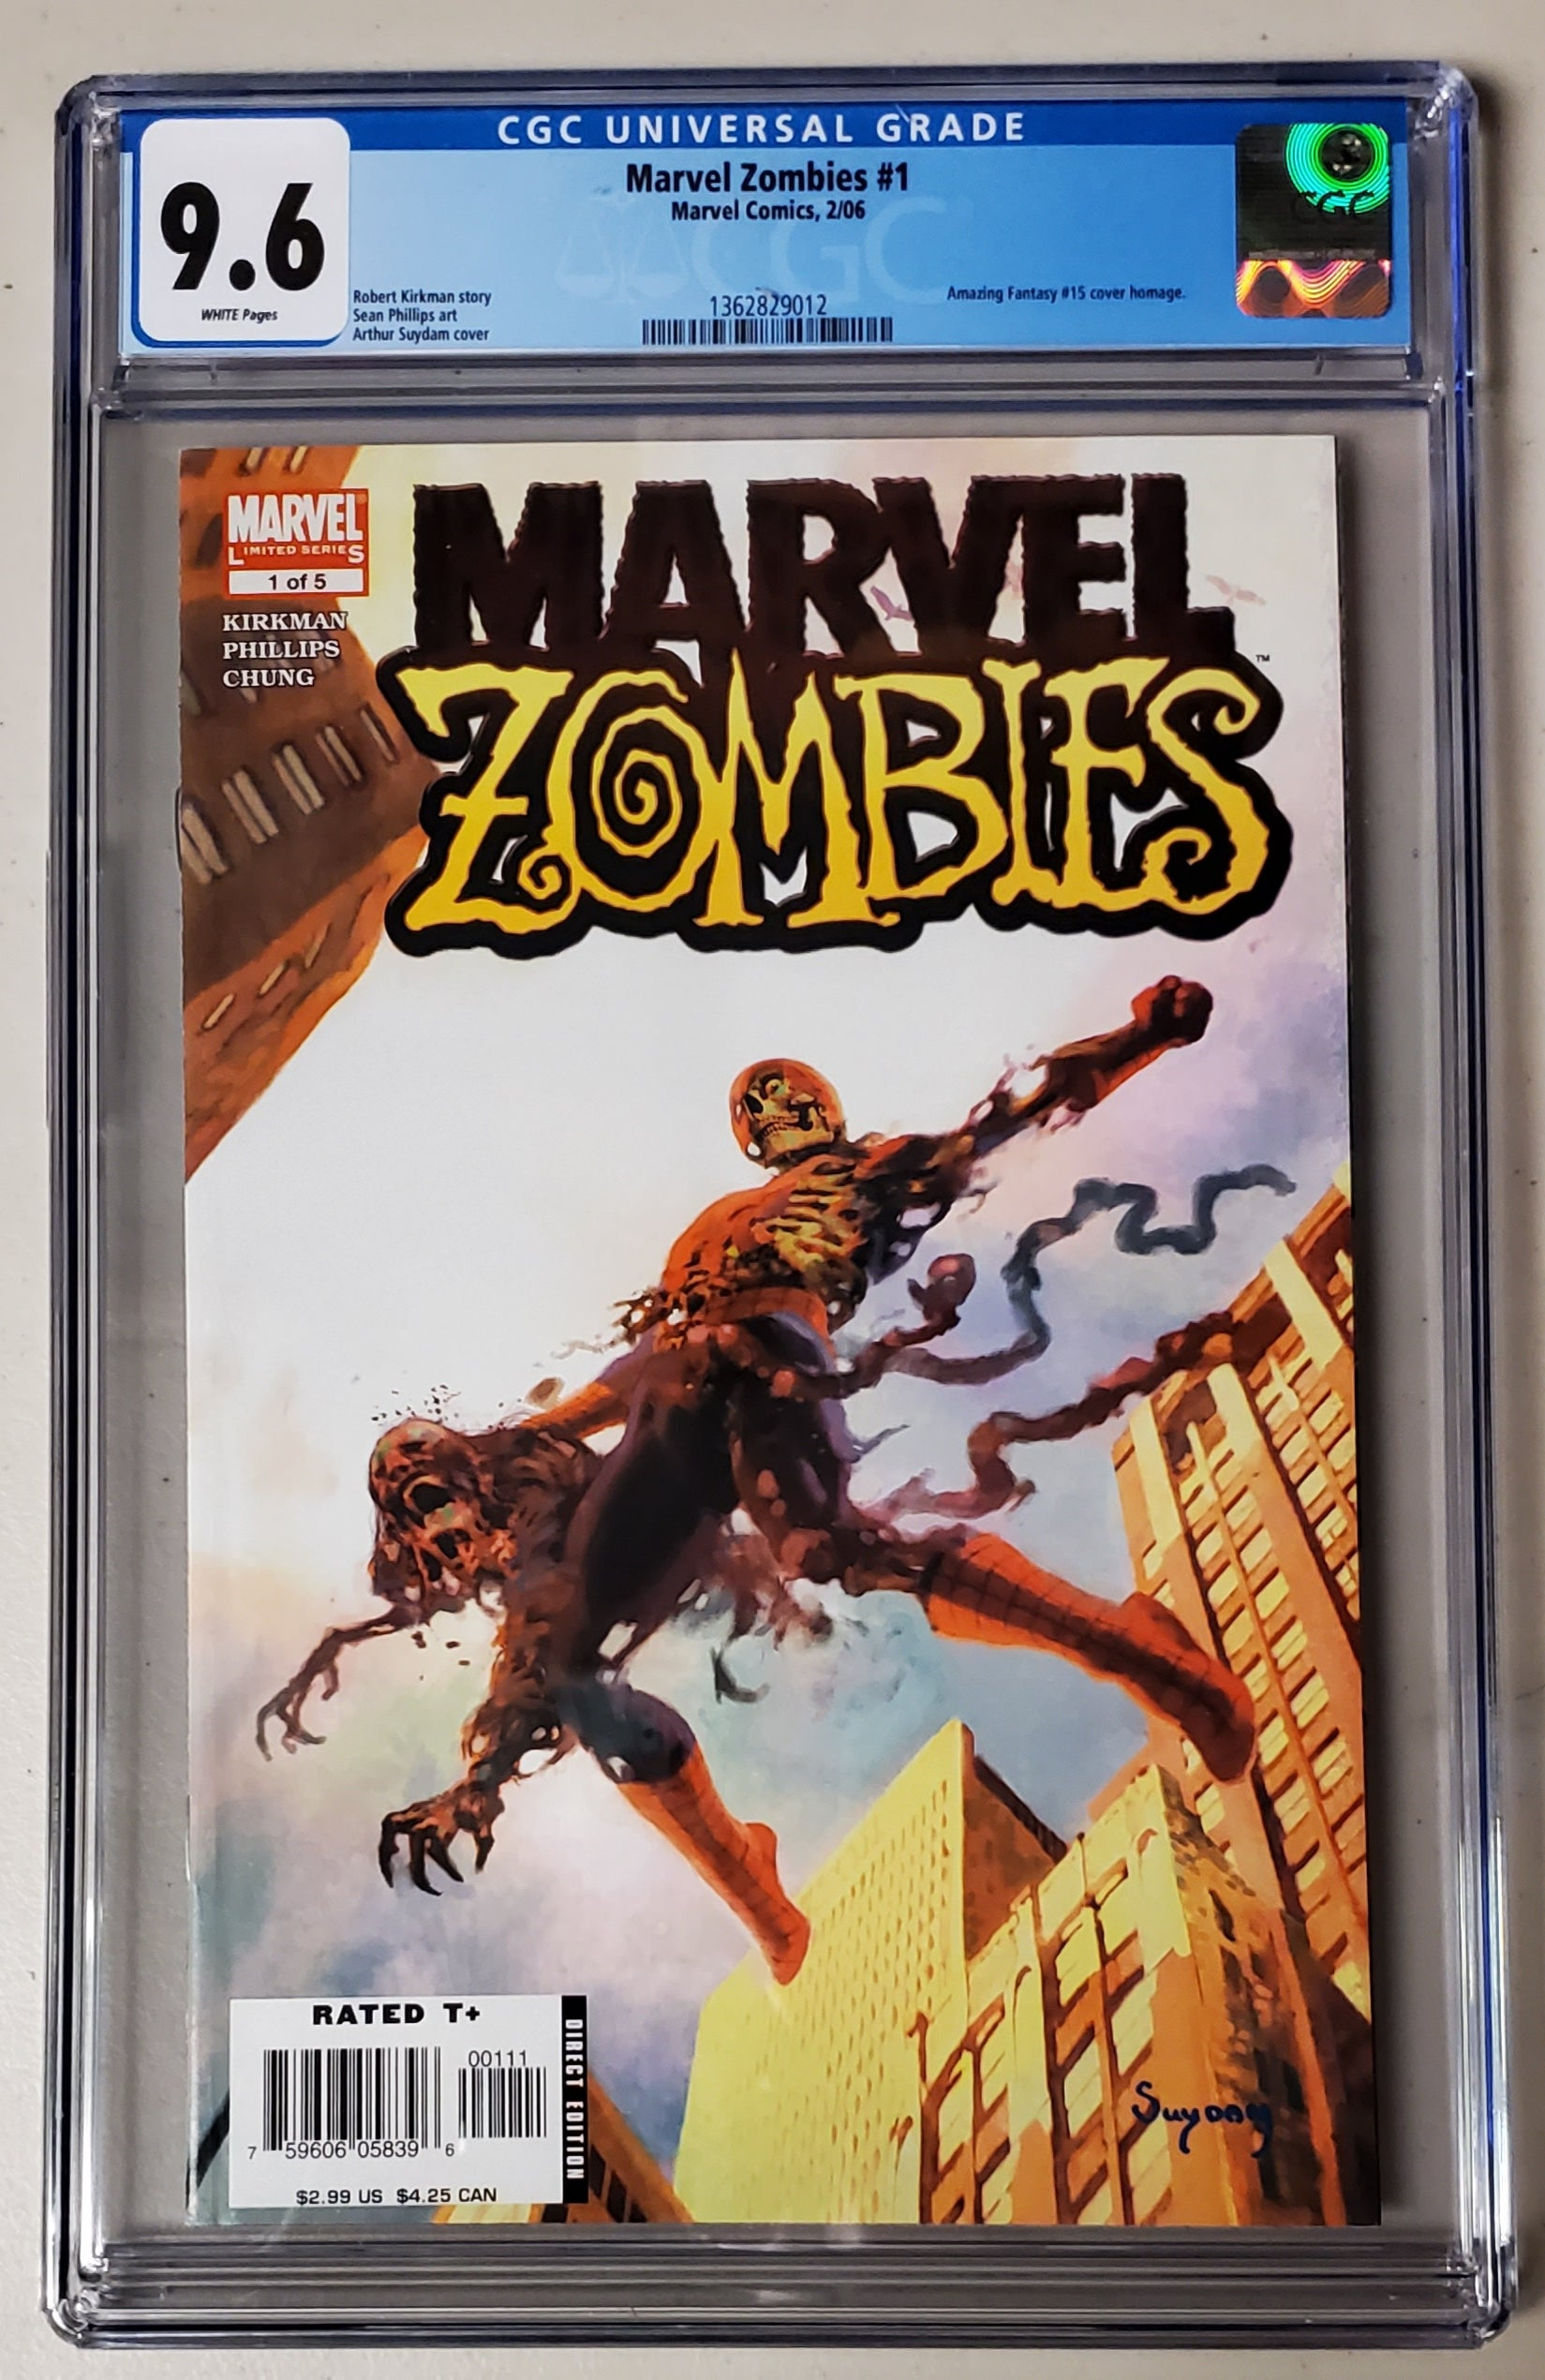 9.6 CGC Marvel Zombies #1 (AF #15 Homage) 2006 (BF)